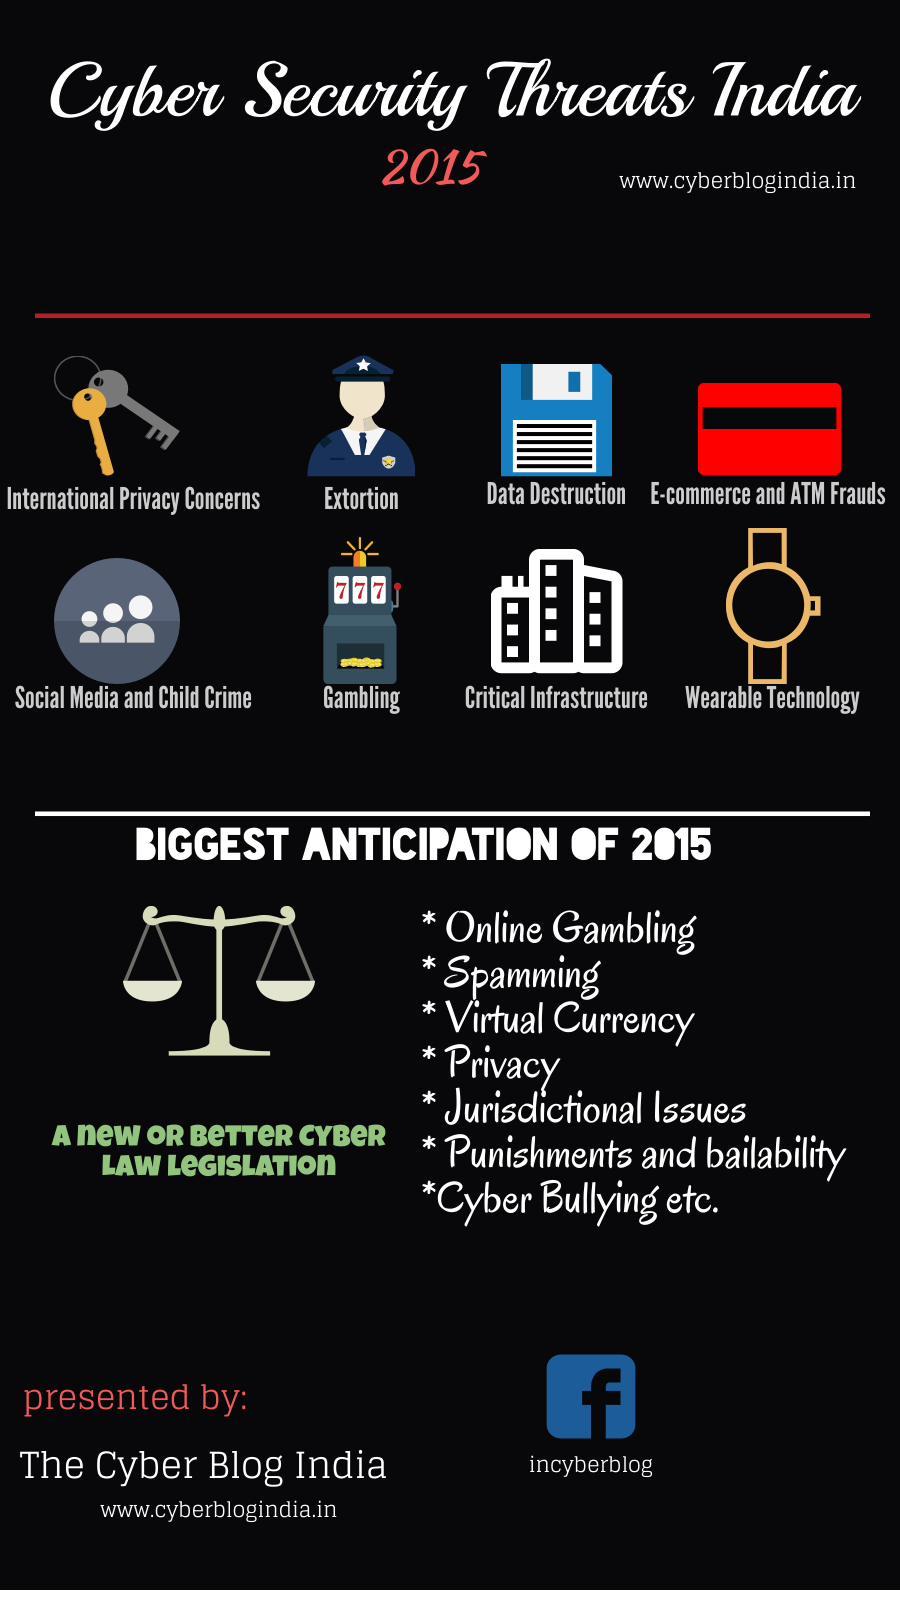 Cyber Security Threats 2015 India